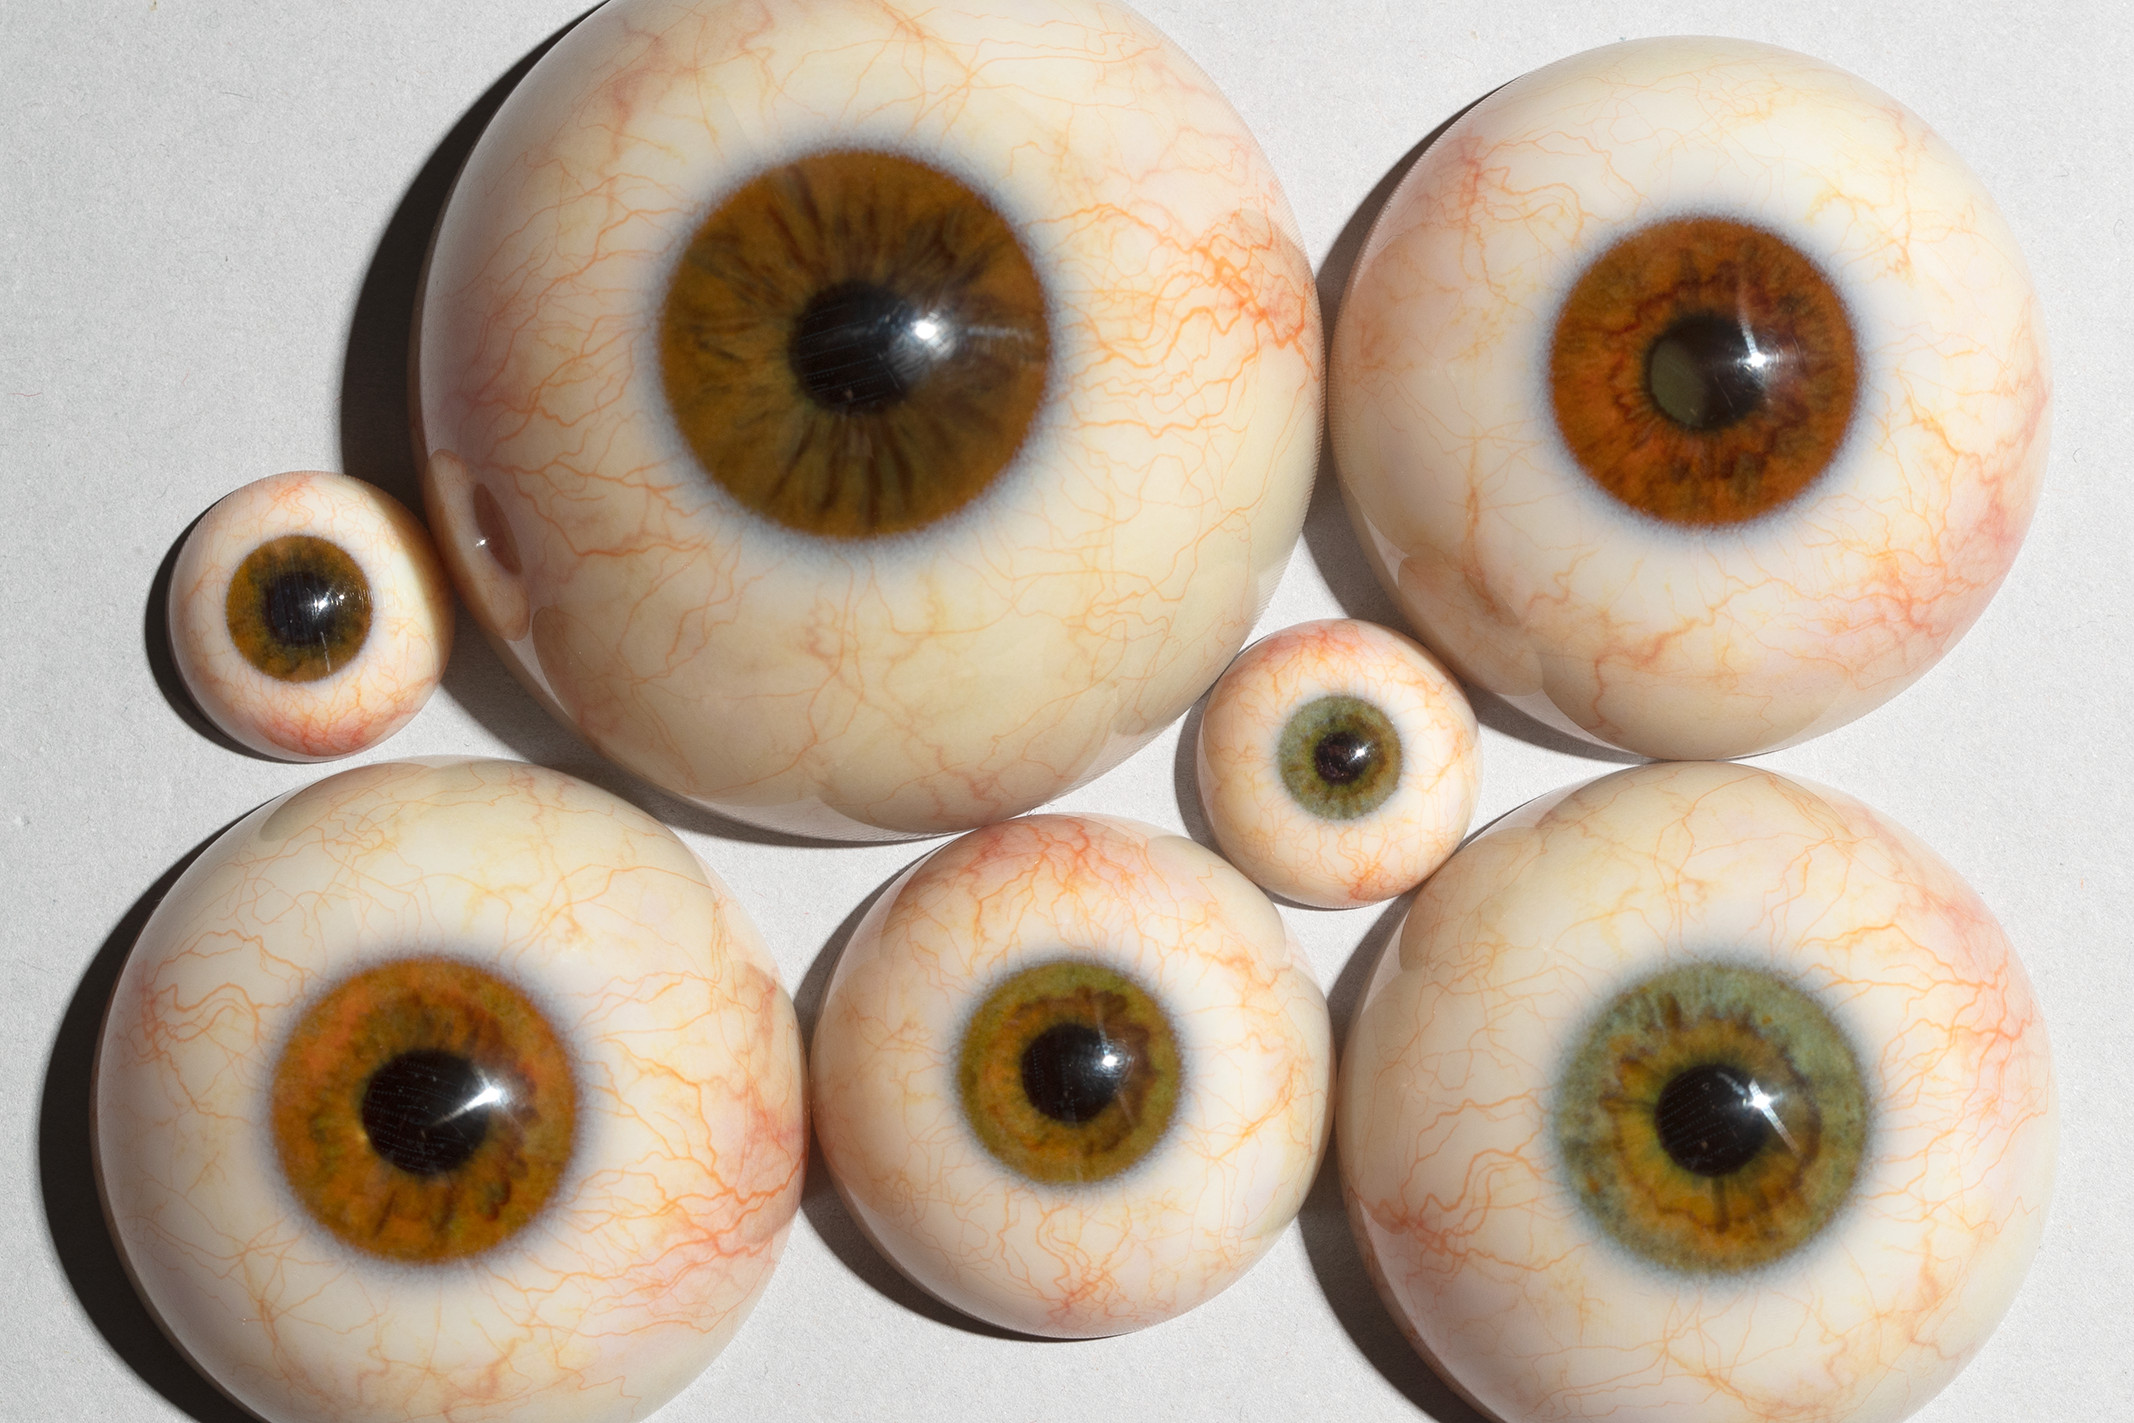 A small collection of some of the eyes developed for Weta Workshop's large-scale hyper-realistic figures.